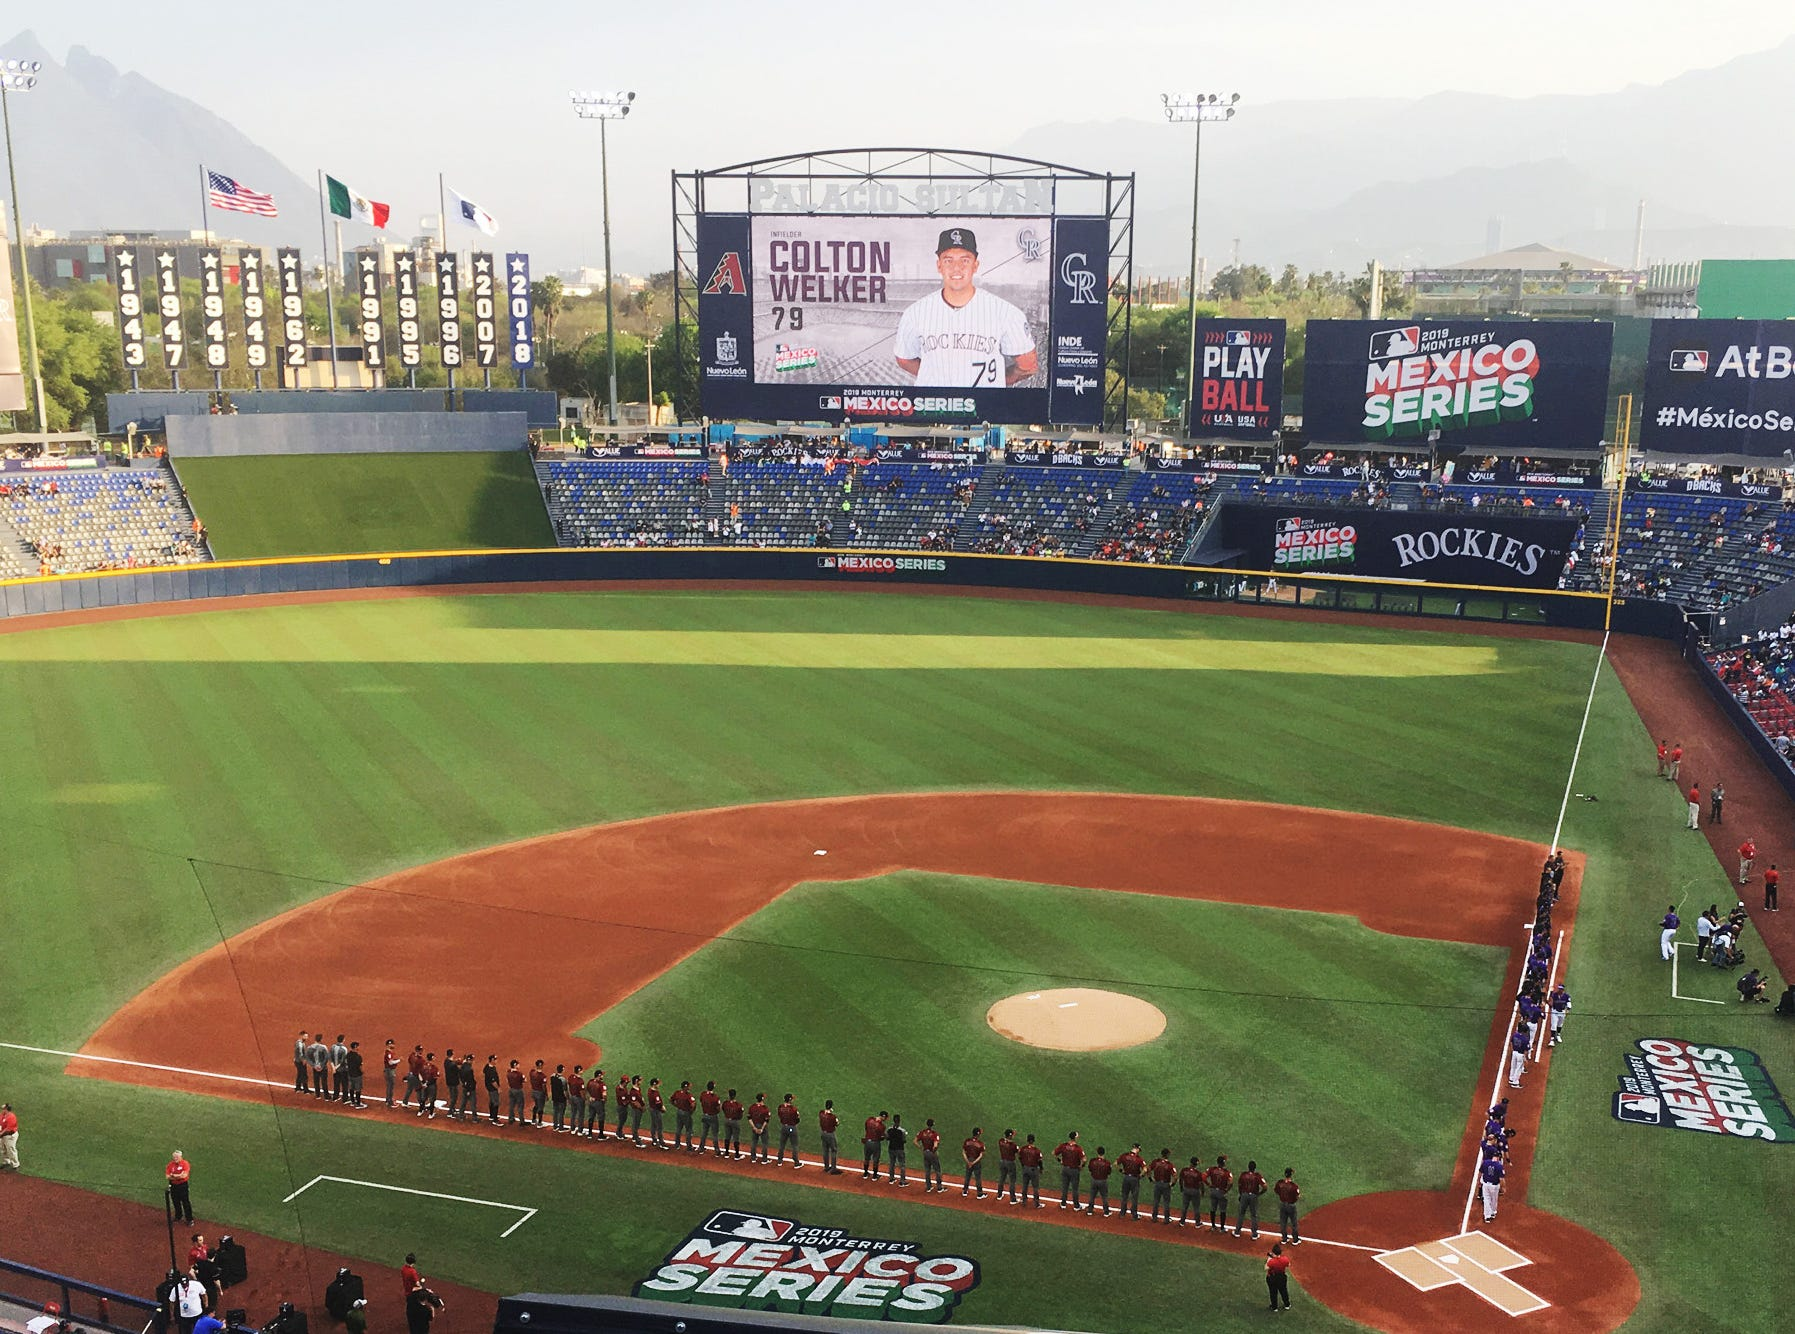 It was a perfect night for baseball as the Arizona Diamondbacks and the Colorado Rockies lined up before playing one of two spring-training games in Monterrey, Mexico.